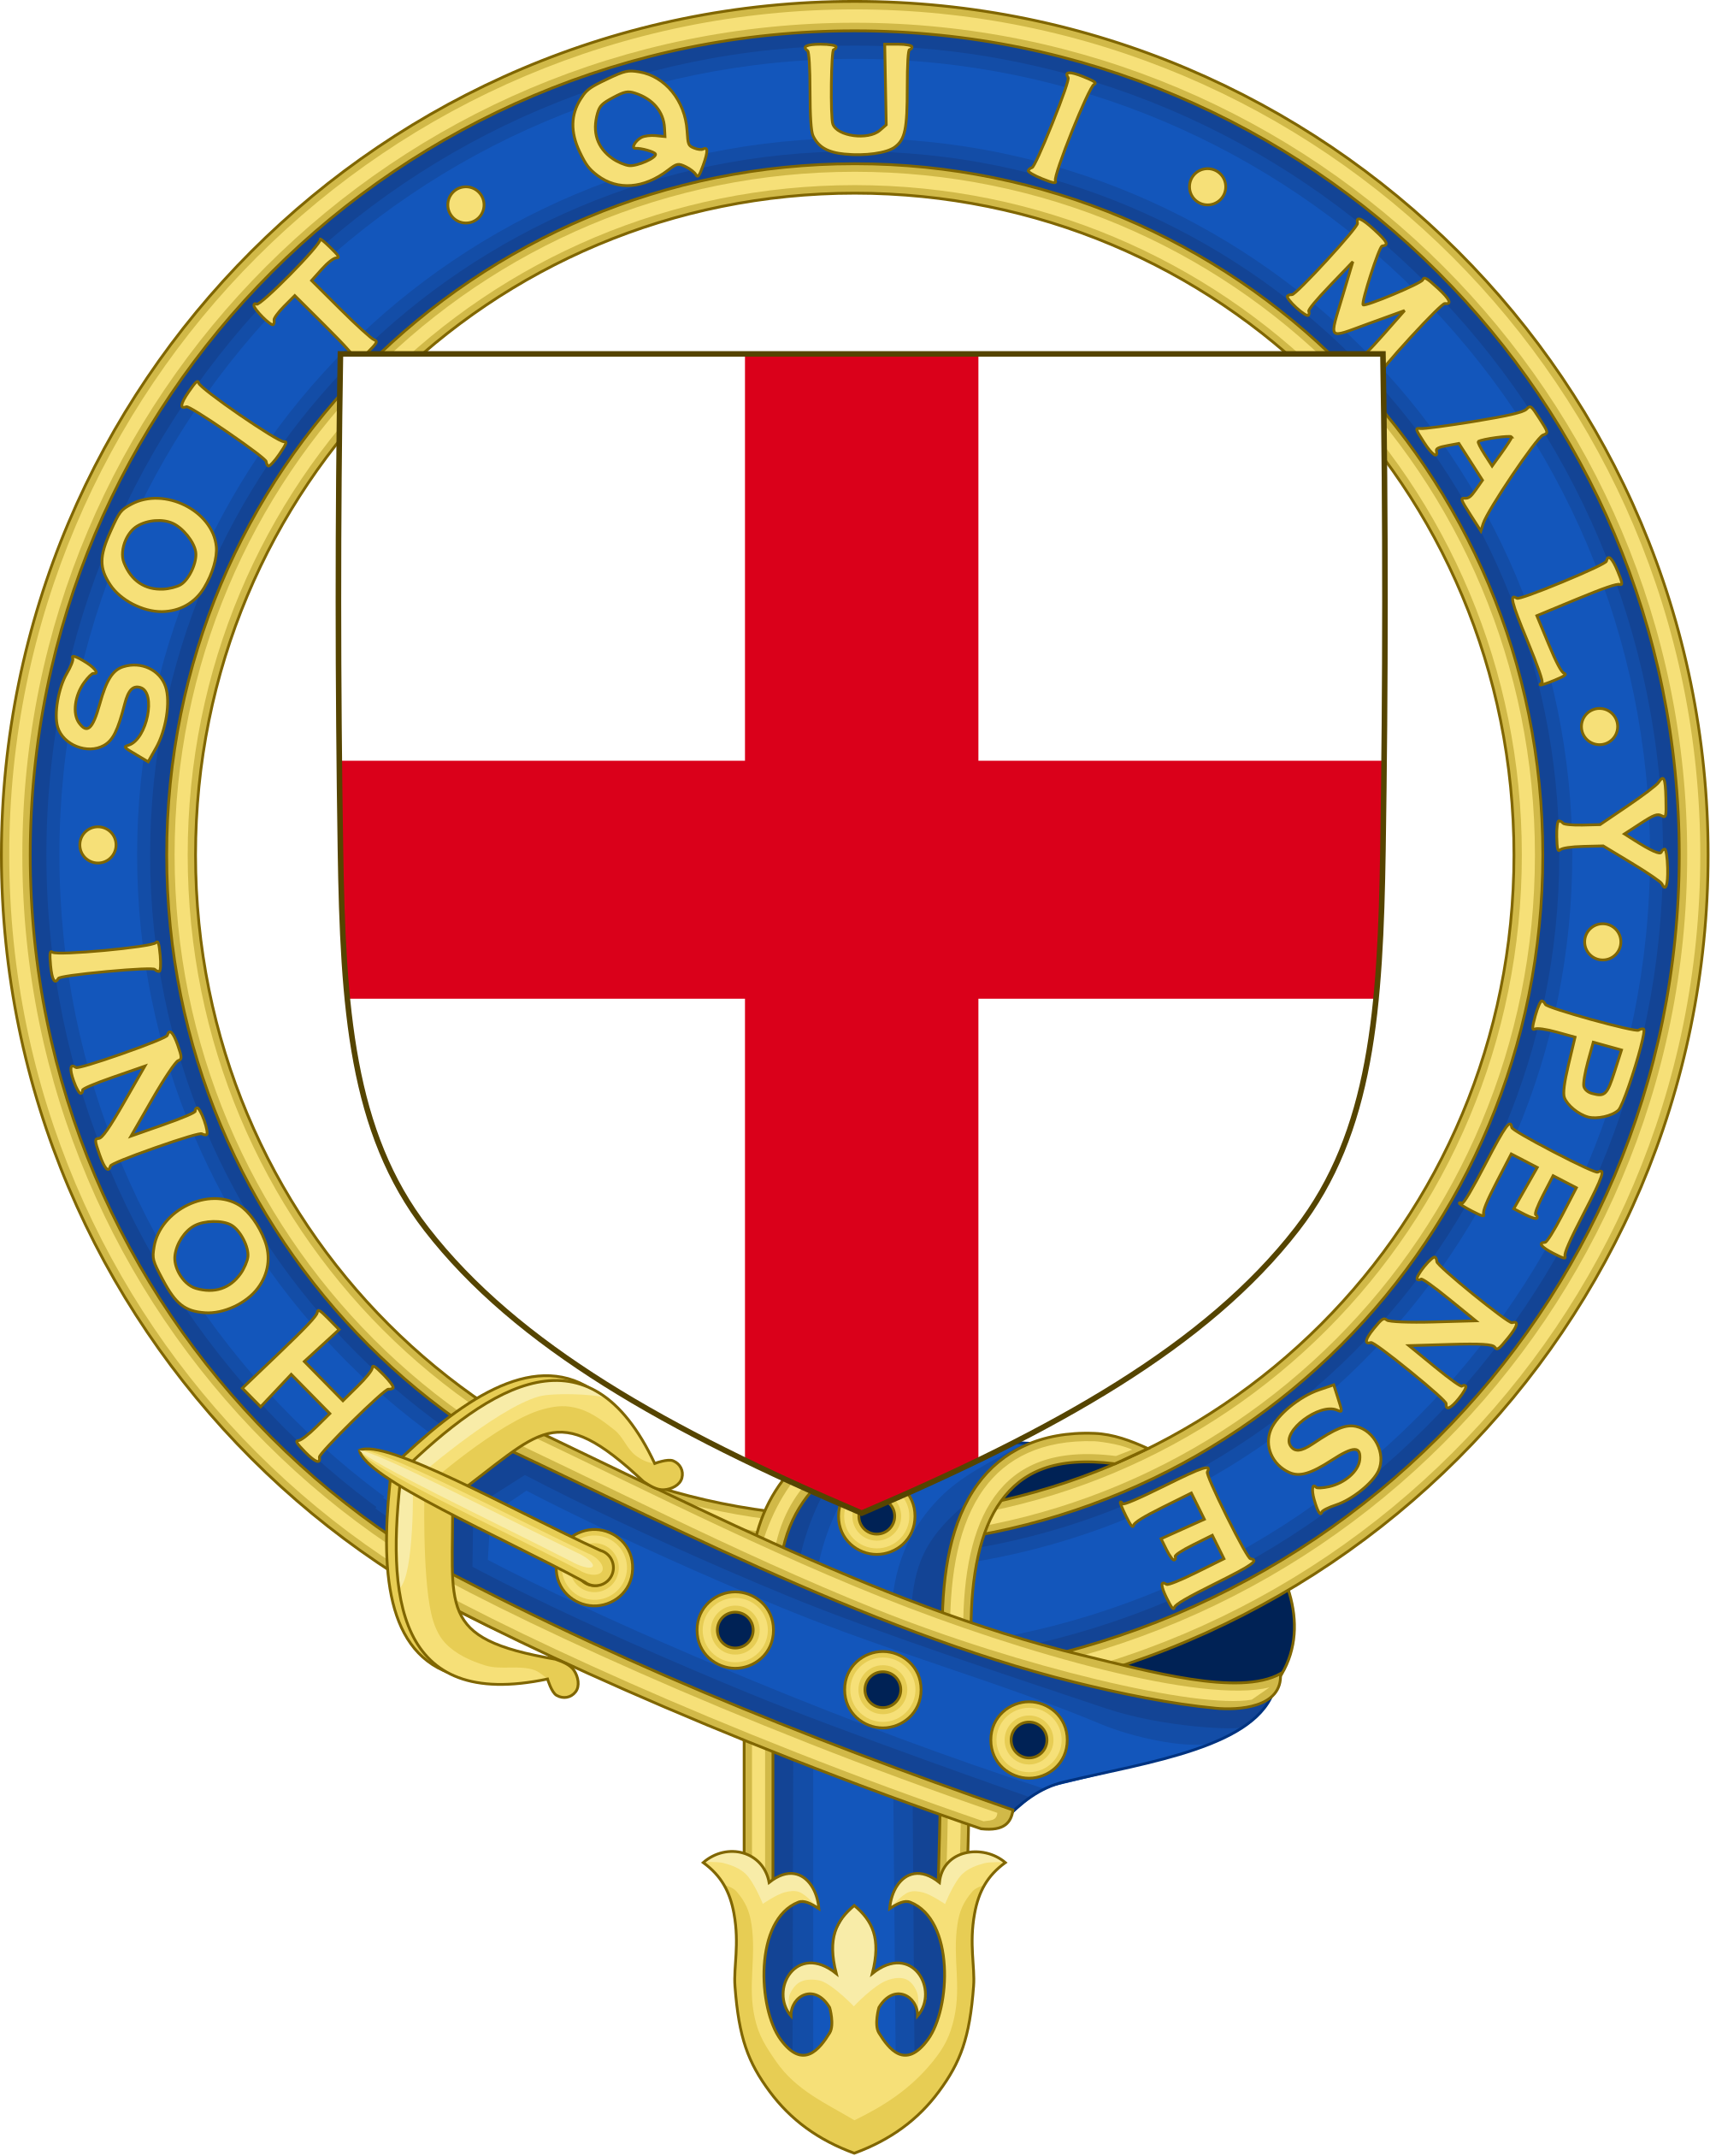 Chalice clipart jewelled. Order of the garter